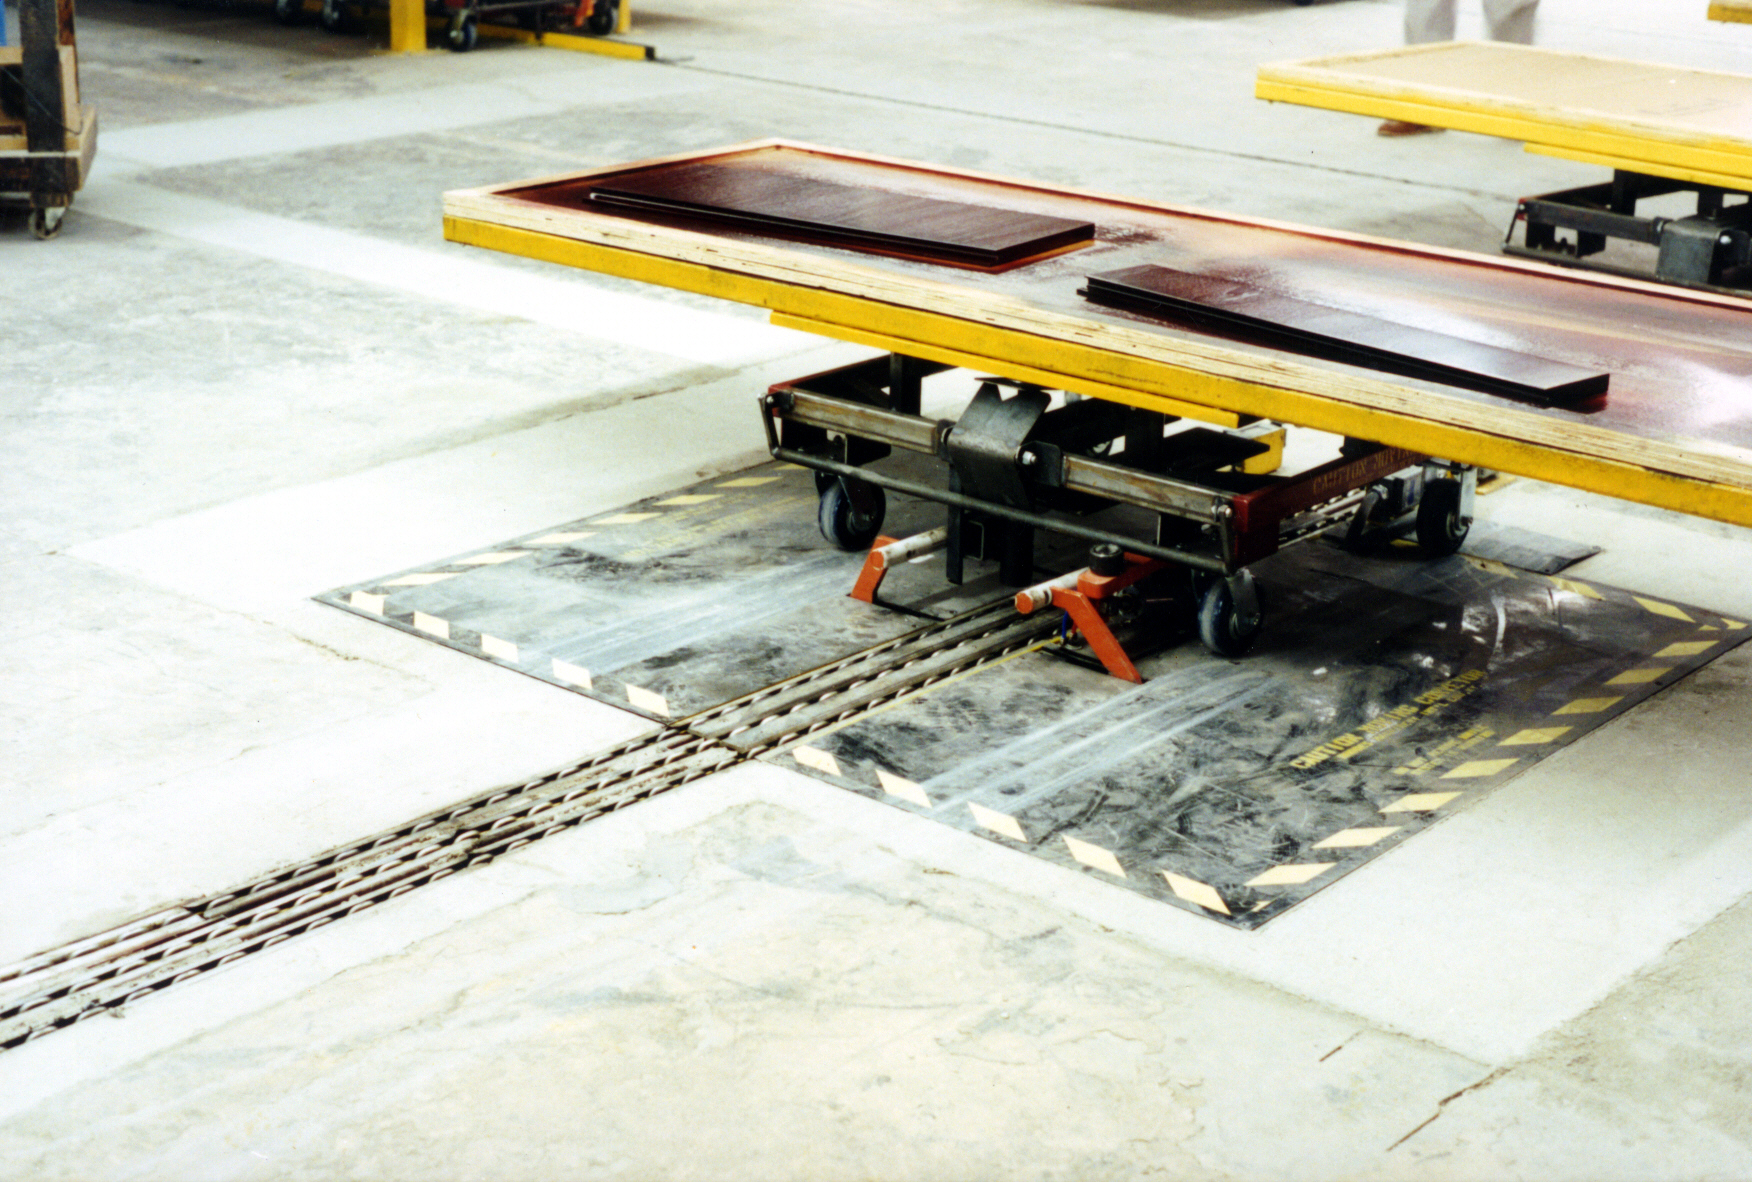 Downdraft Tables Grinding Dust CONTACT RSI TO LEARN MORE ABOUT THE CENTER TOW SYSTEM